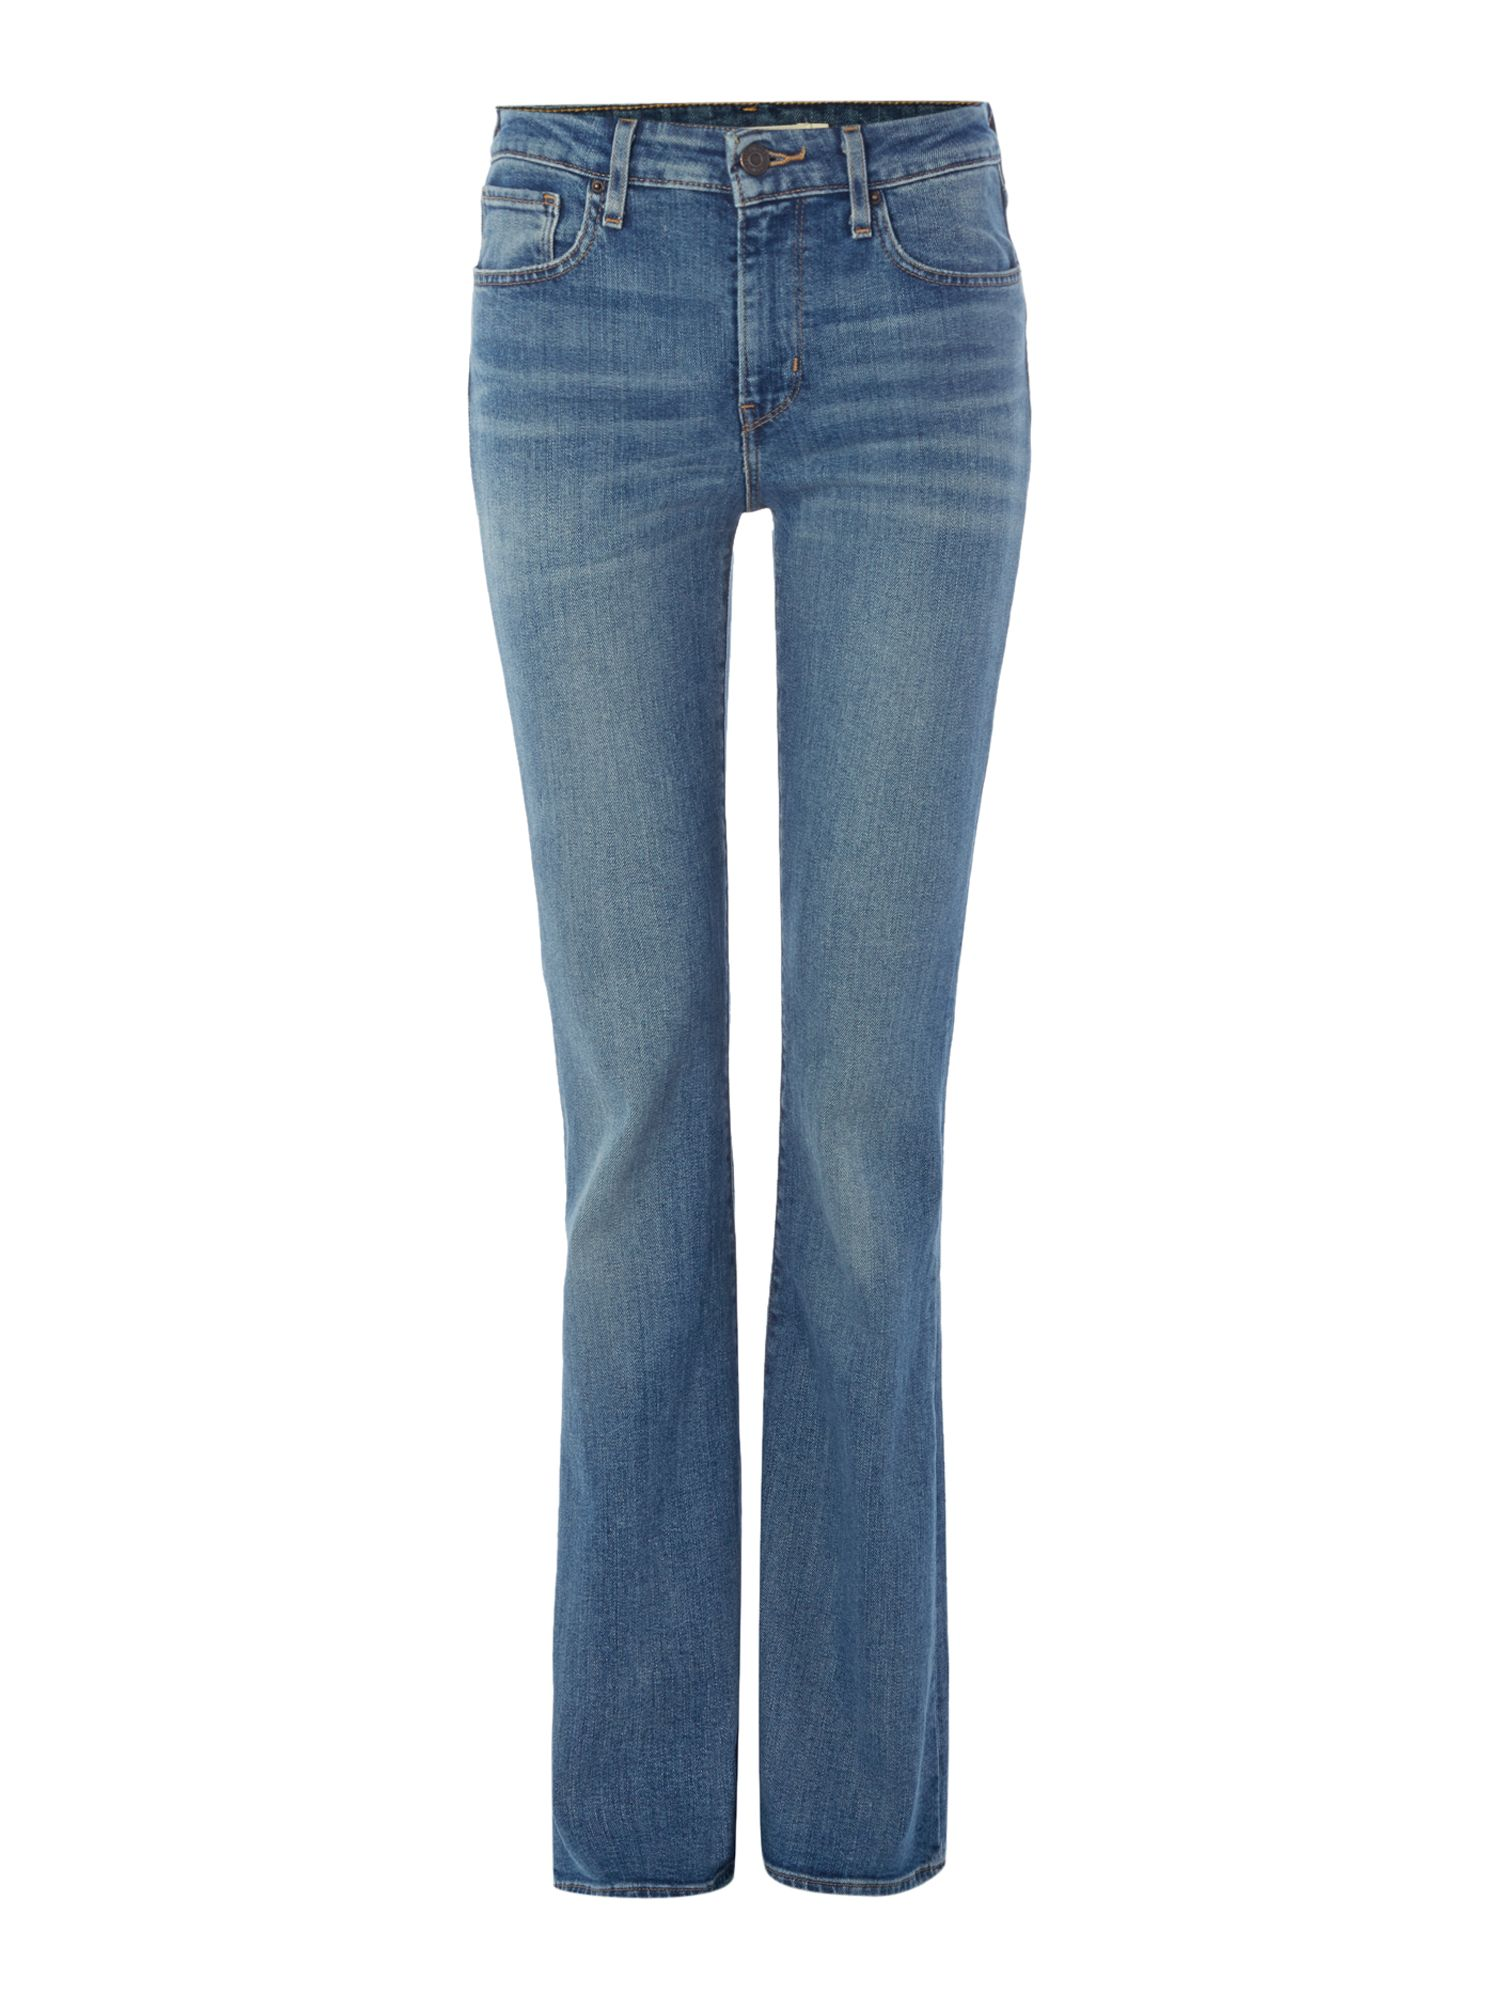 Levi's High Rise Flare Jean In Star Gaze - House of Fraser